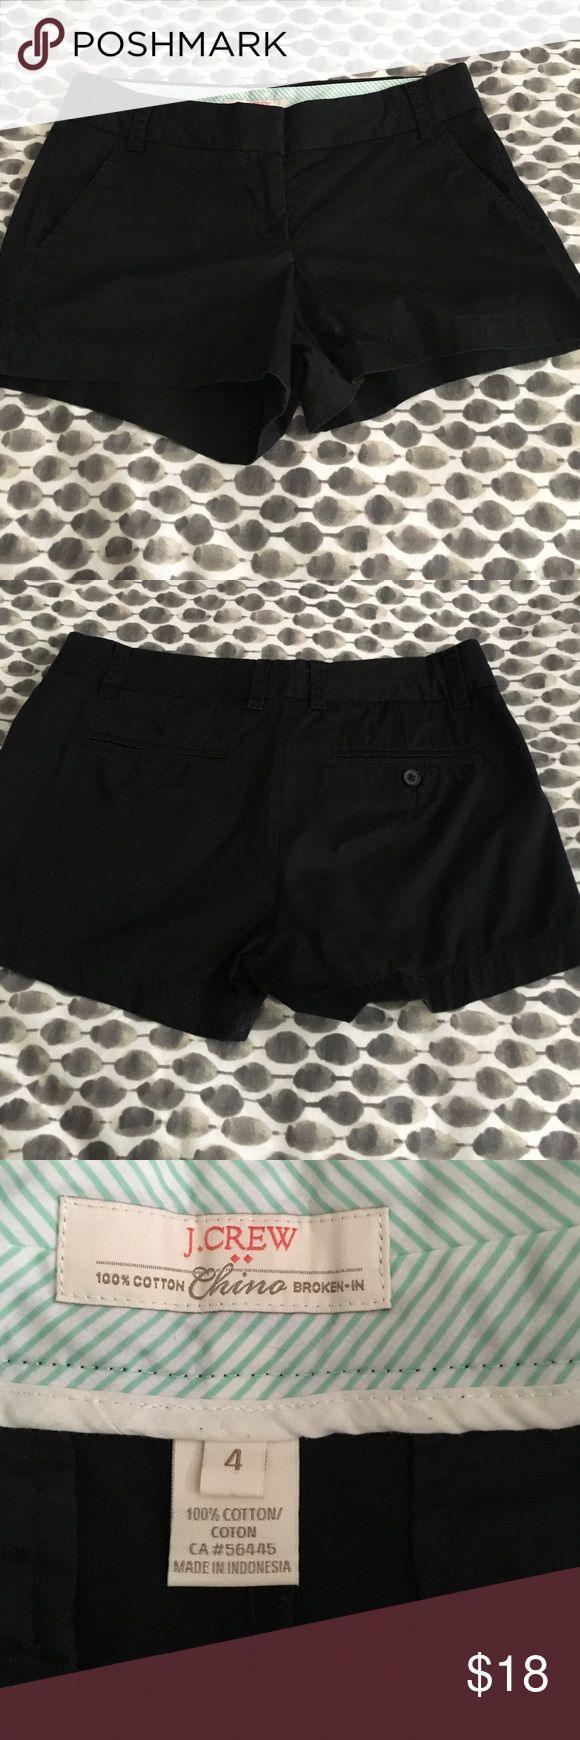 "J. Crew Factory Black Chino Shorts Black Chino Shorts from J. Crew Factory. Size 4. Great used condition. I haven't worn these much so they've only been washed a handful of times and the color is still pretty black. 3"" inseam. J.Crew Factory Shorts"